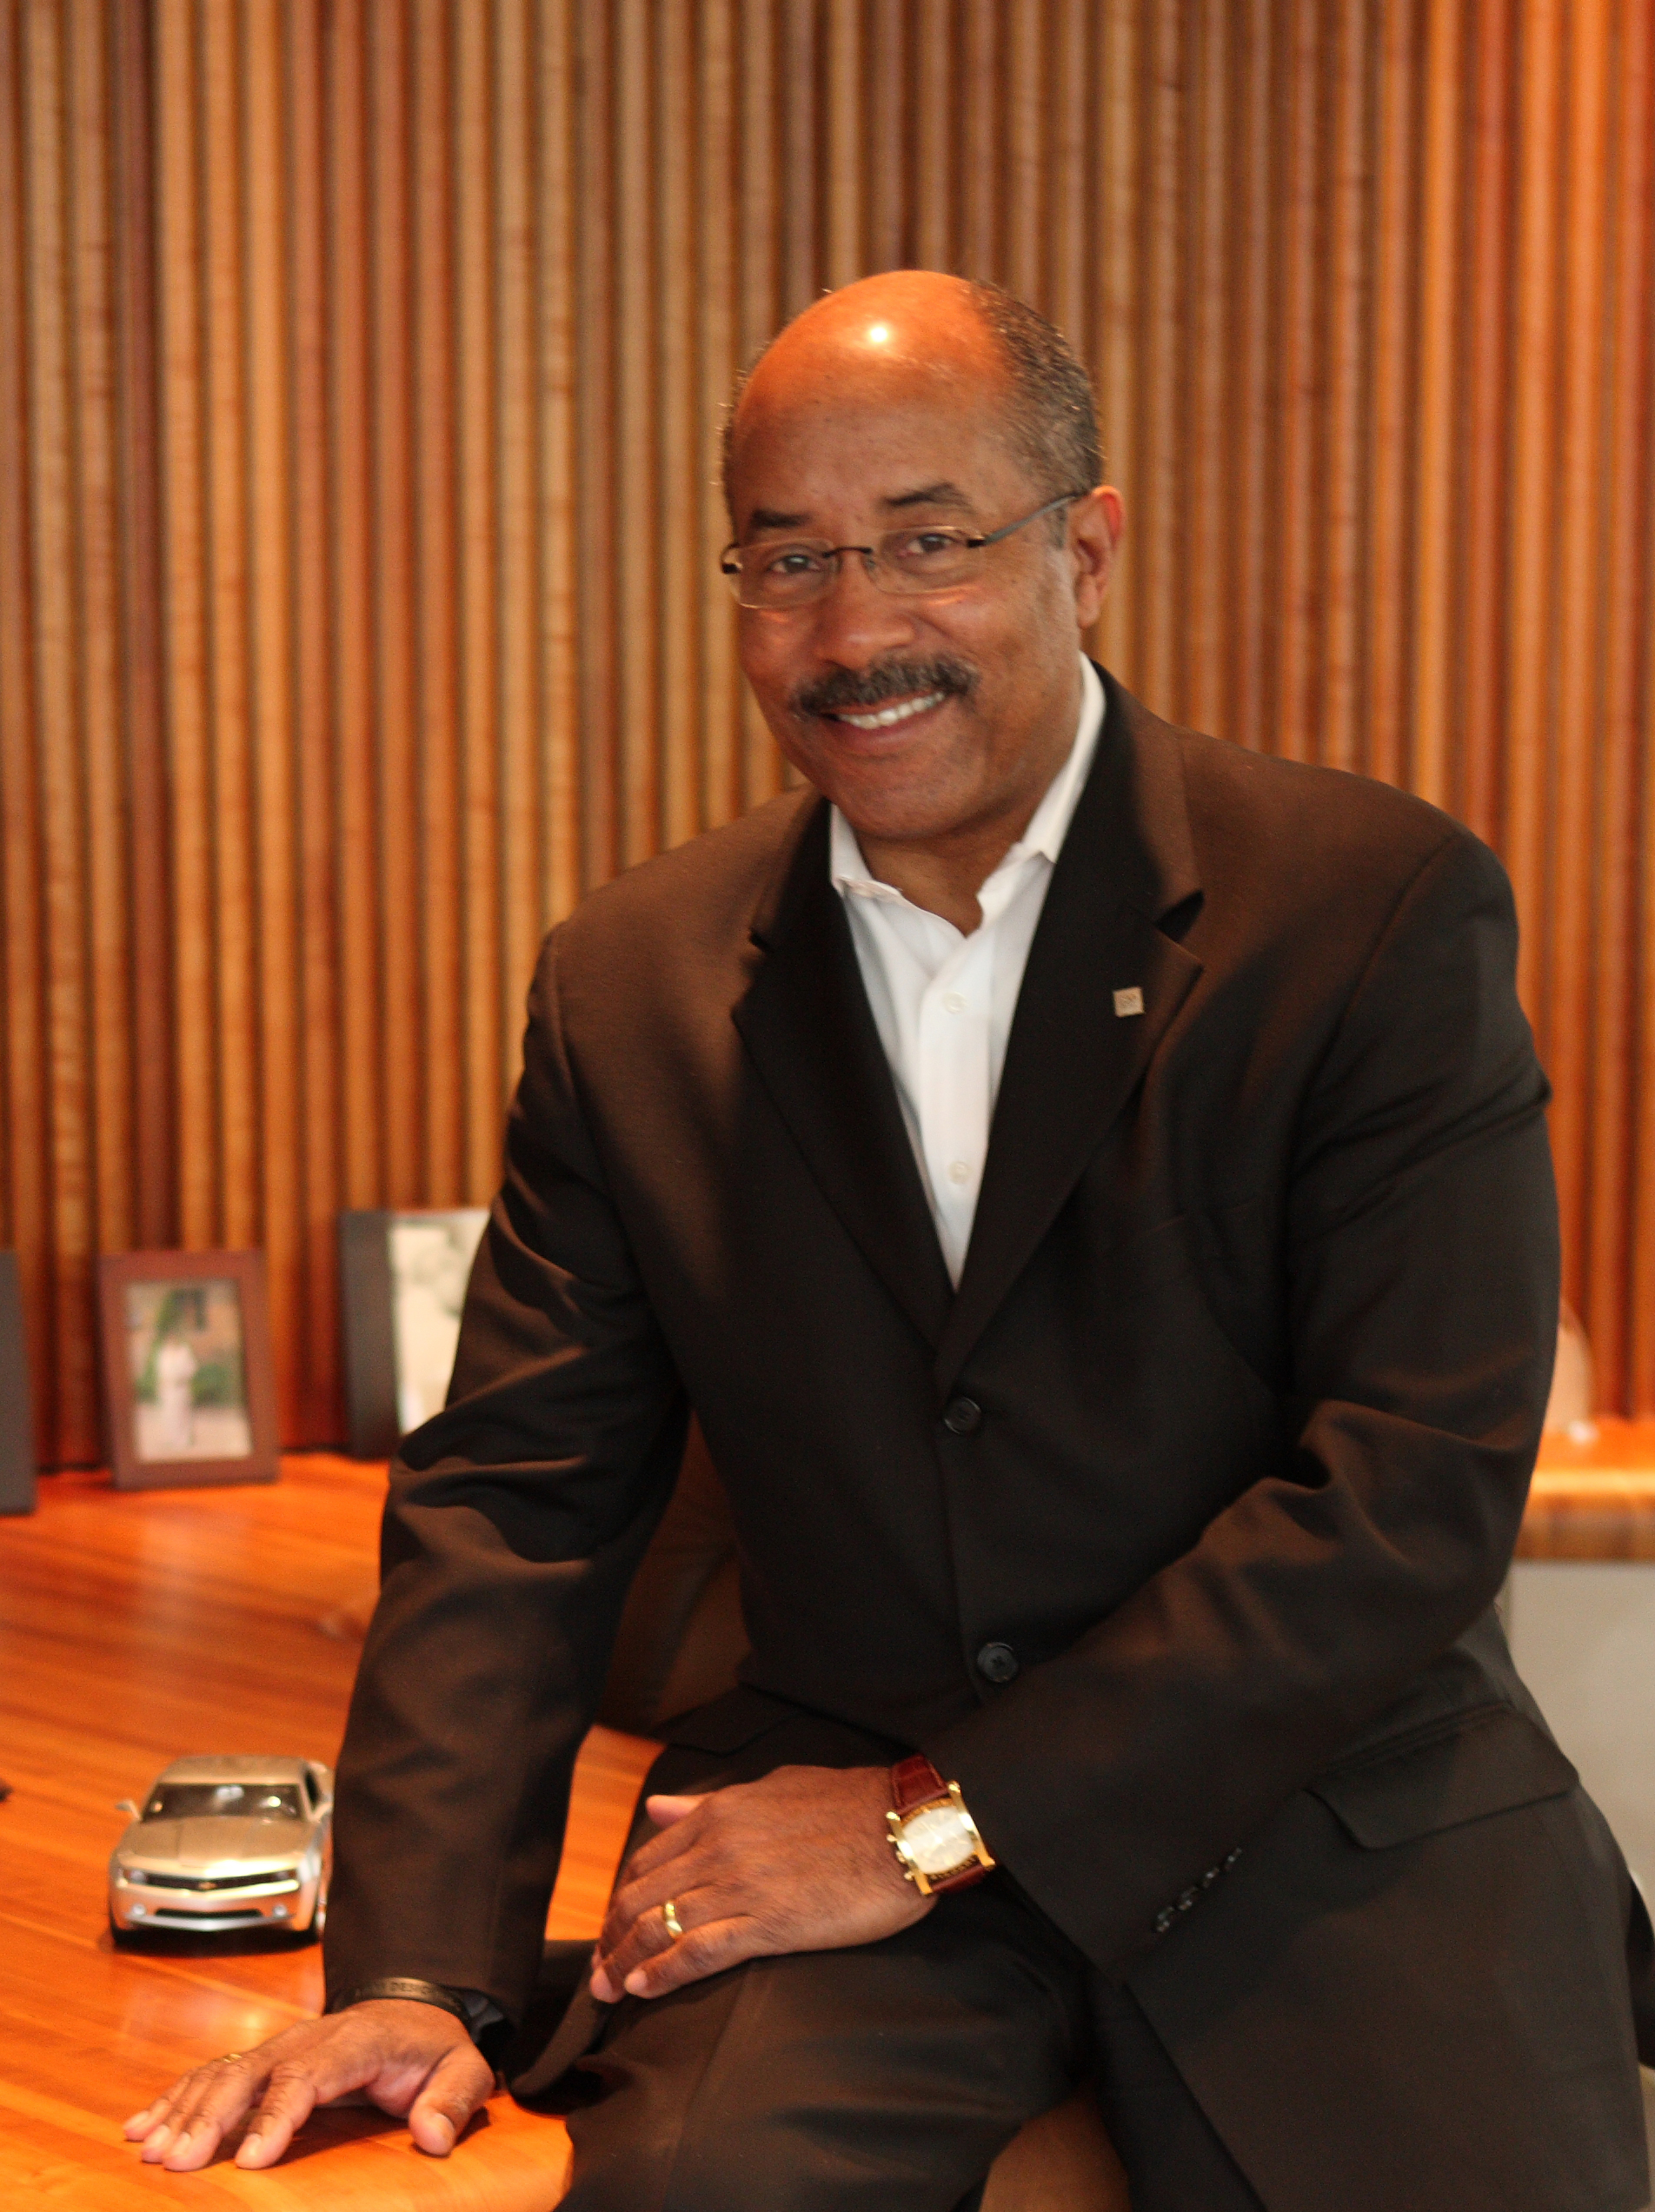 National Corvette Museum >> GM Design Chief Ed Welburn To Retire July 1 – National ...